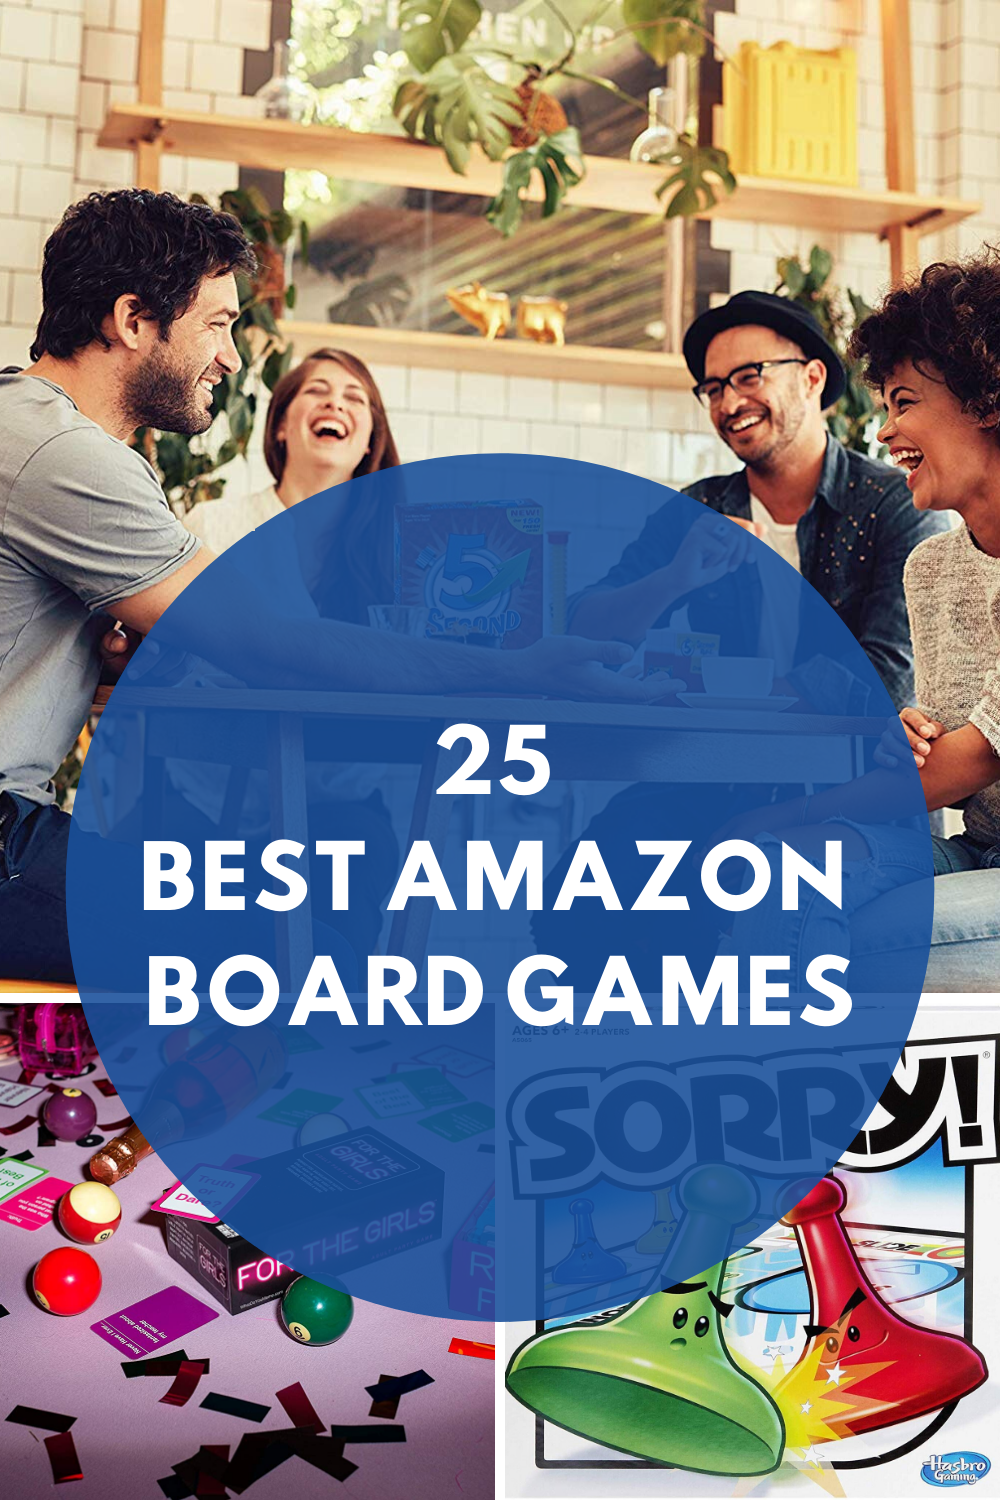 Best Amazon Board Games